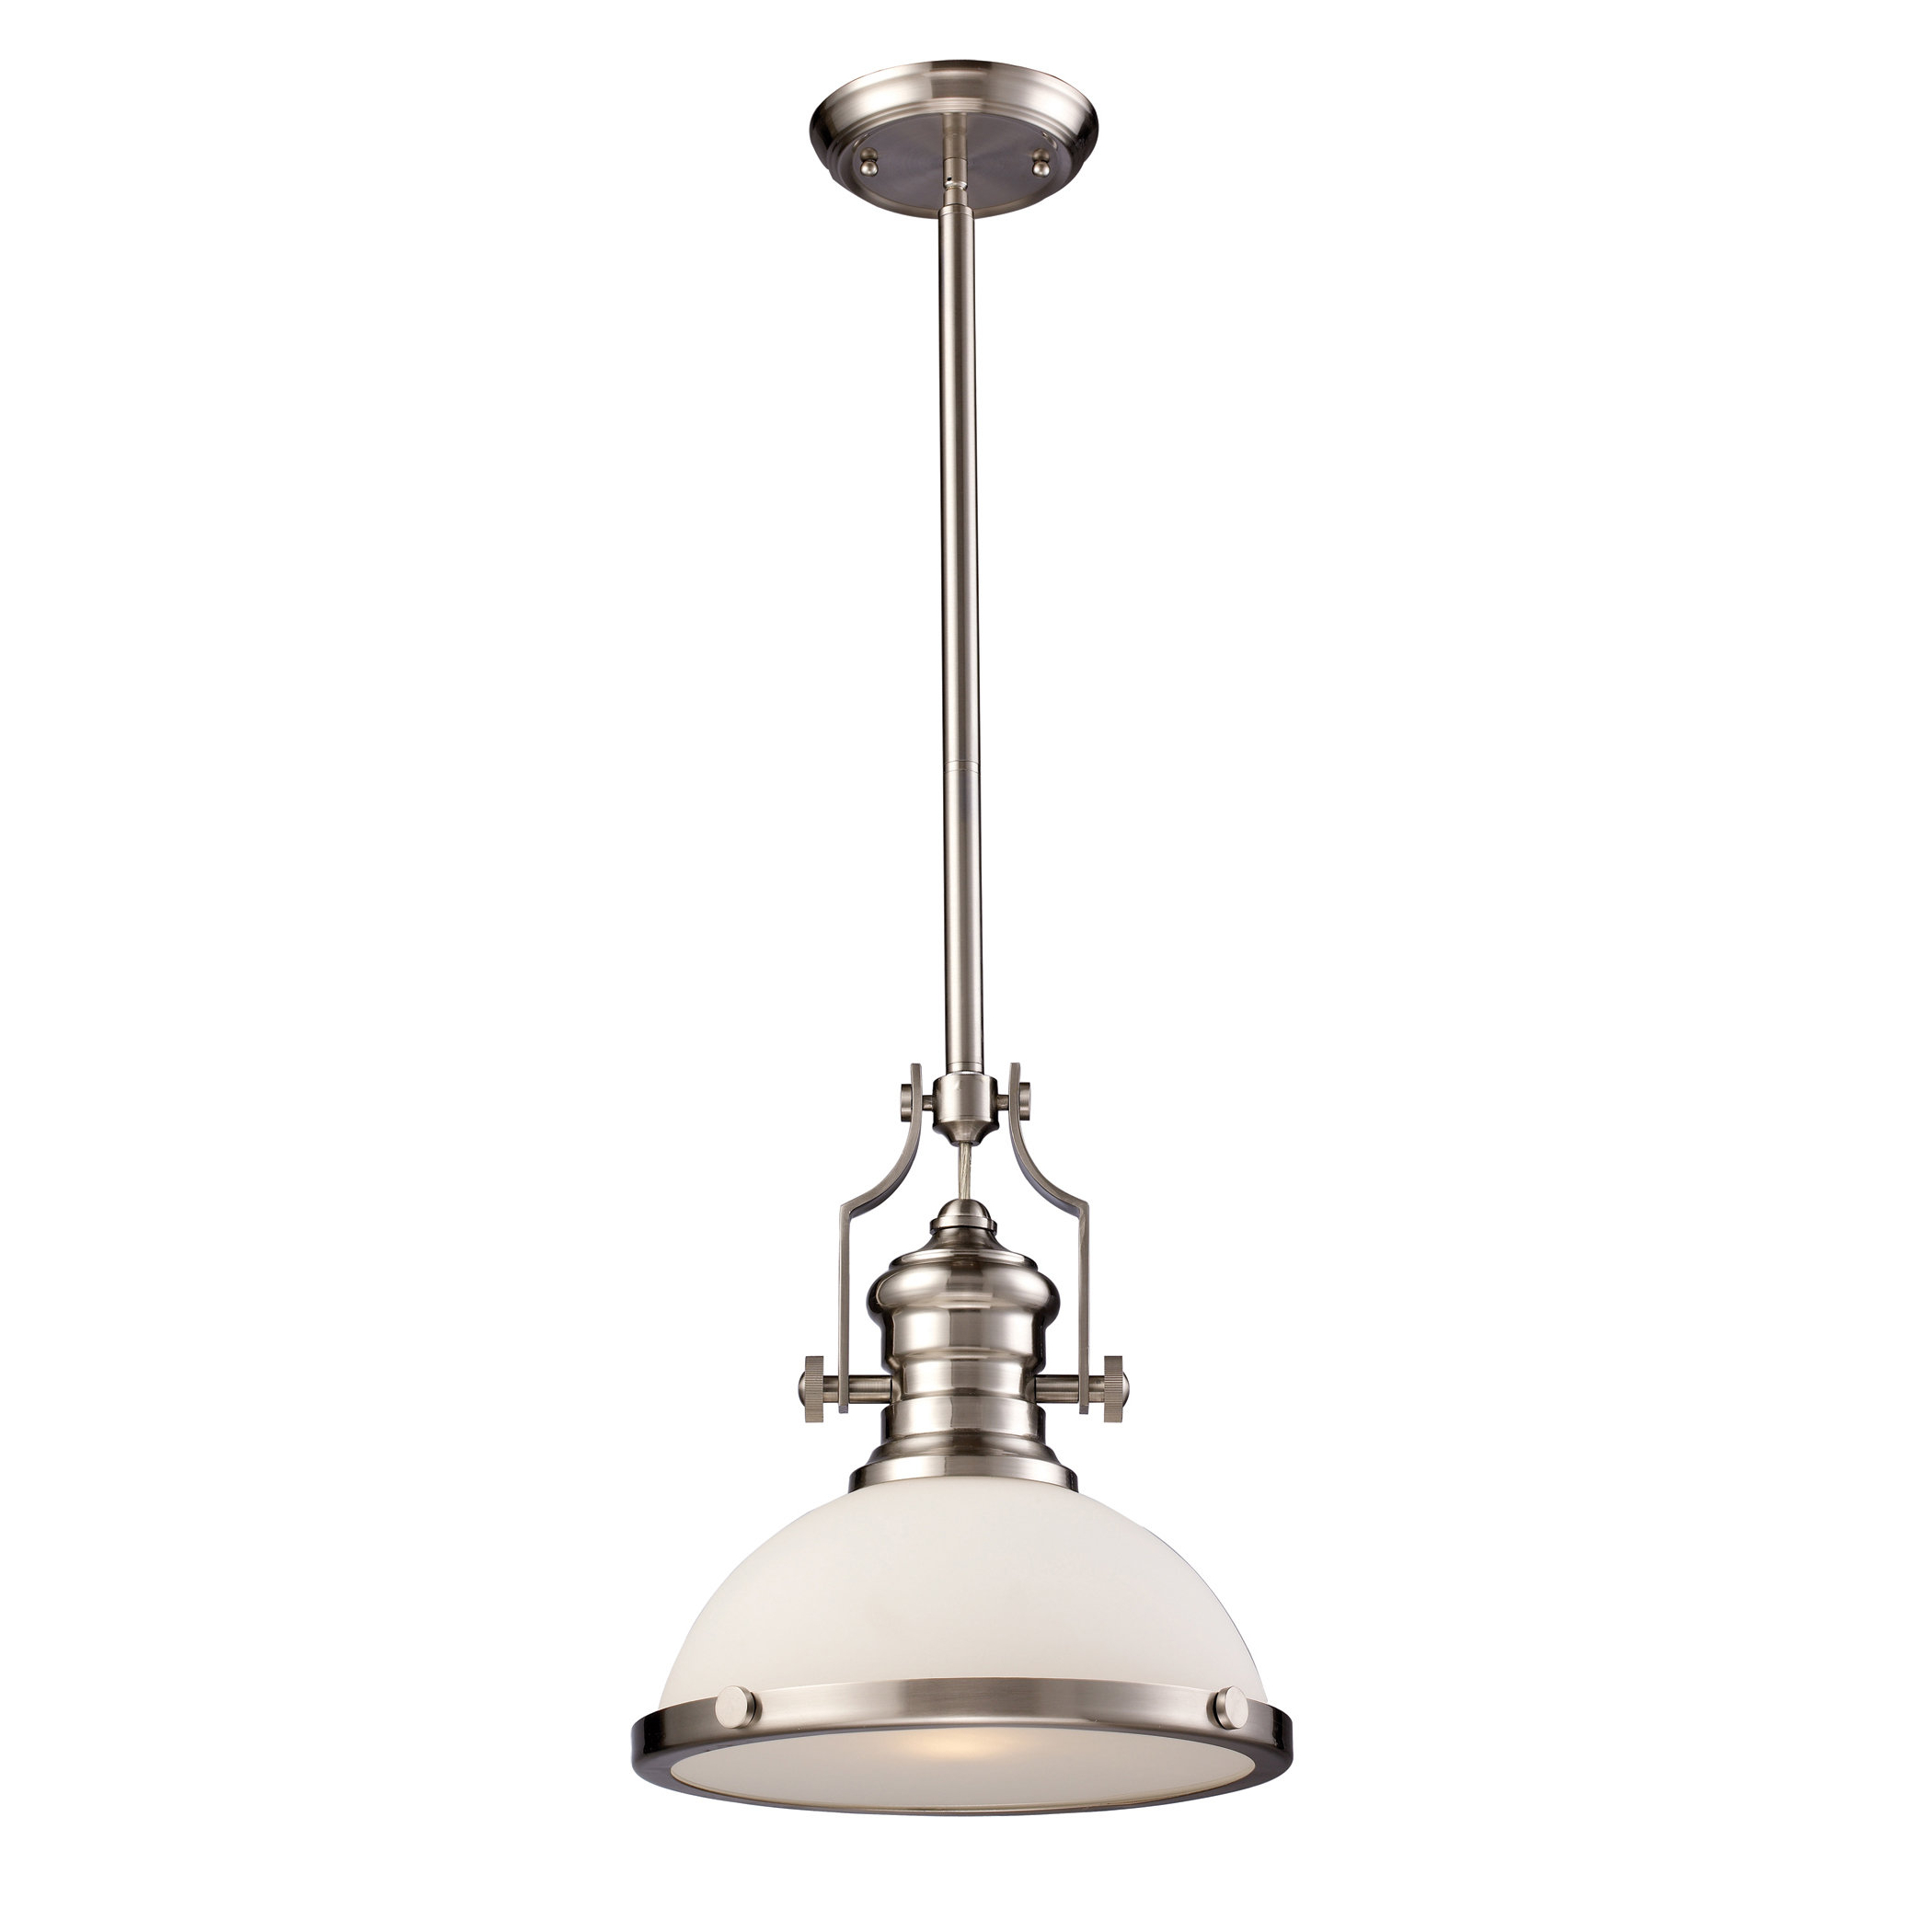 Widely Used Mueller 1 Light Single Dome Pendants Throughout Proctor 1 Light Bowl Pendant (Gallery 13 of 20)